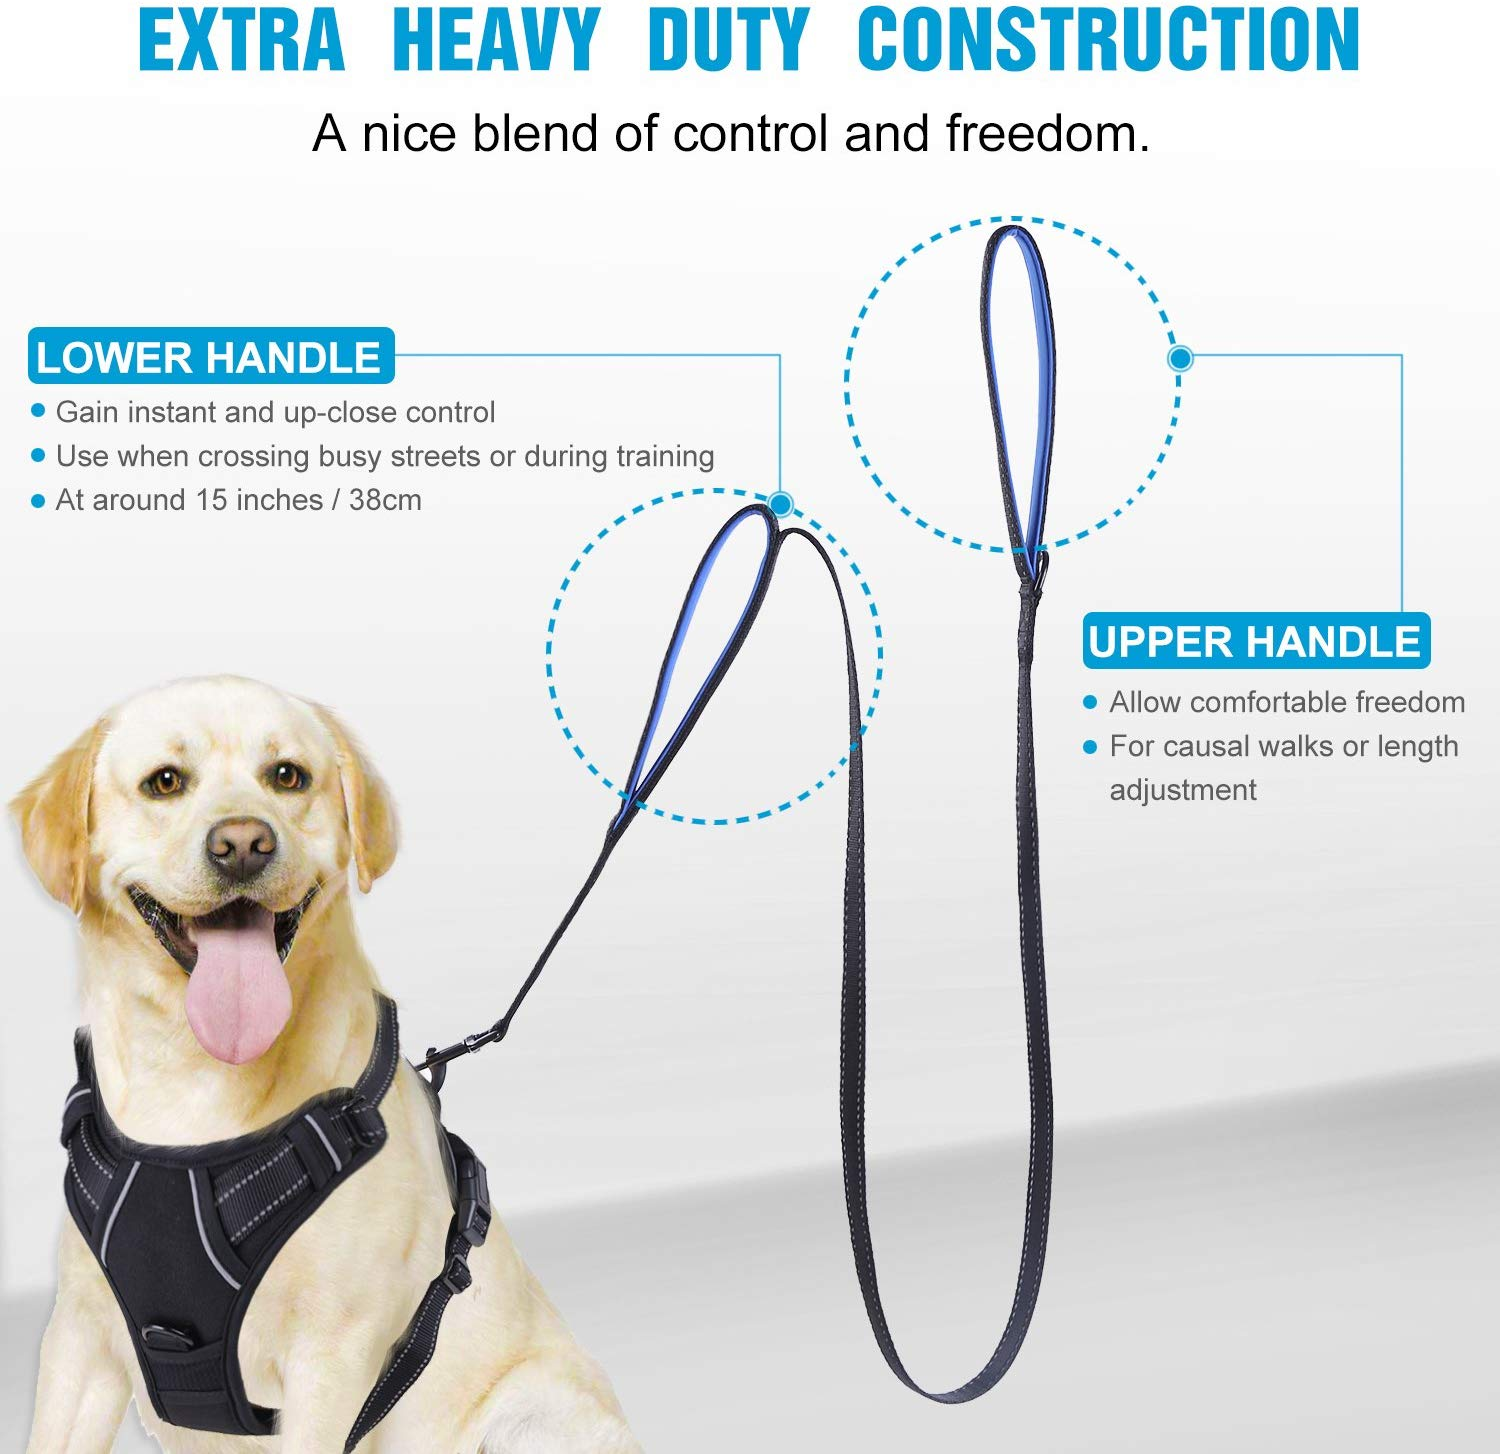 Heavy Dog Leash 188CM Dog Collar Padded Traffic Handle Extra Control Nylon Dog Leash Safety Training Double Handles Lead for Dog